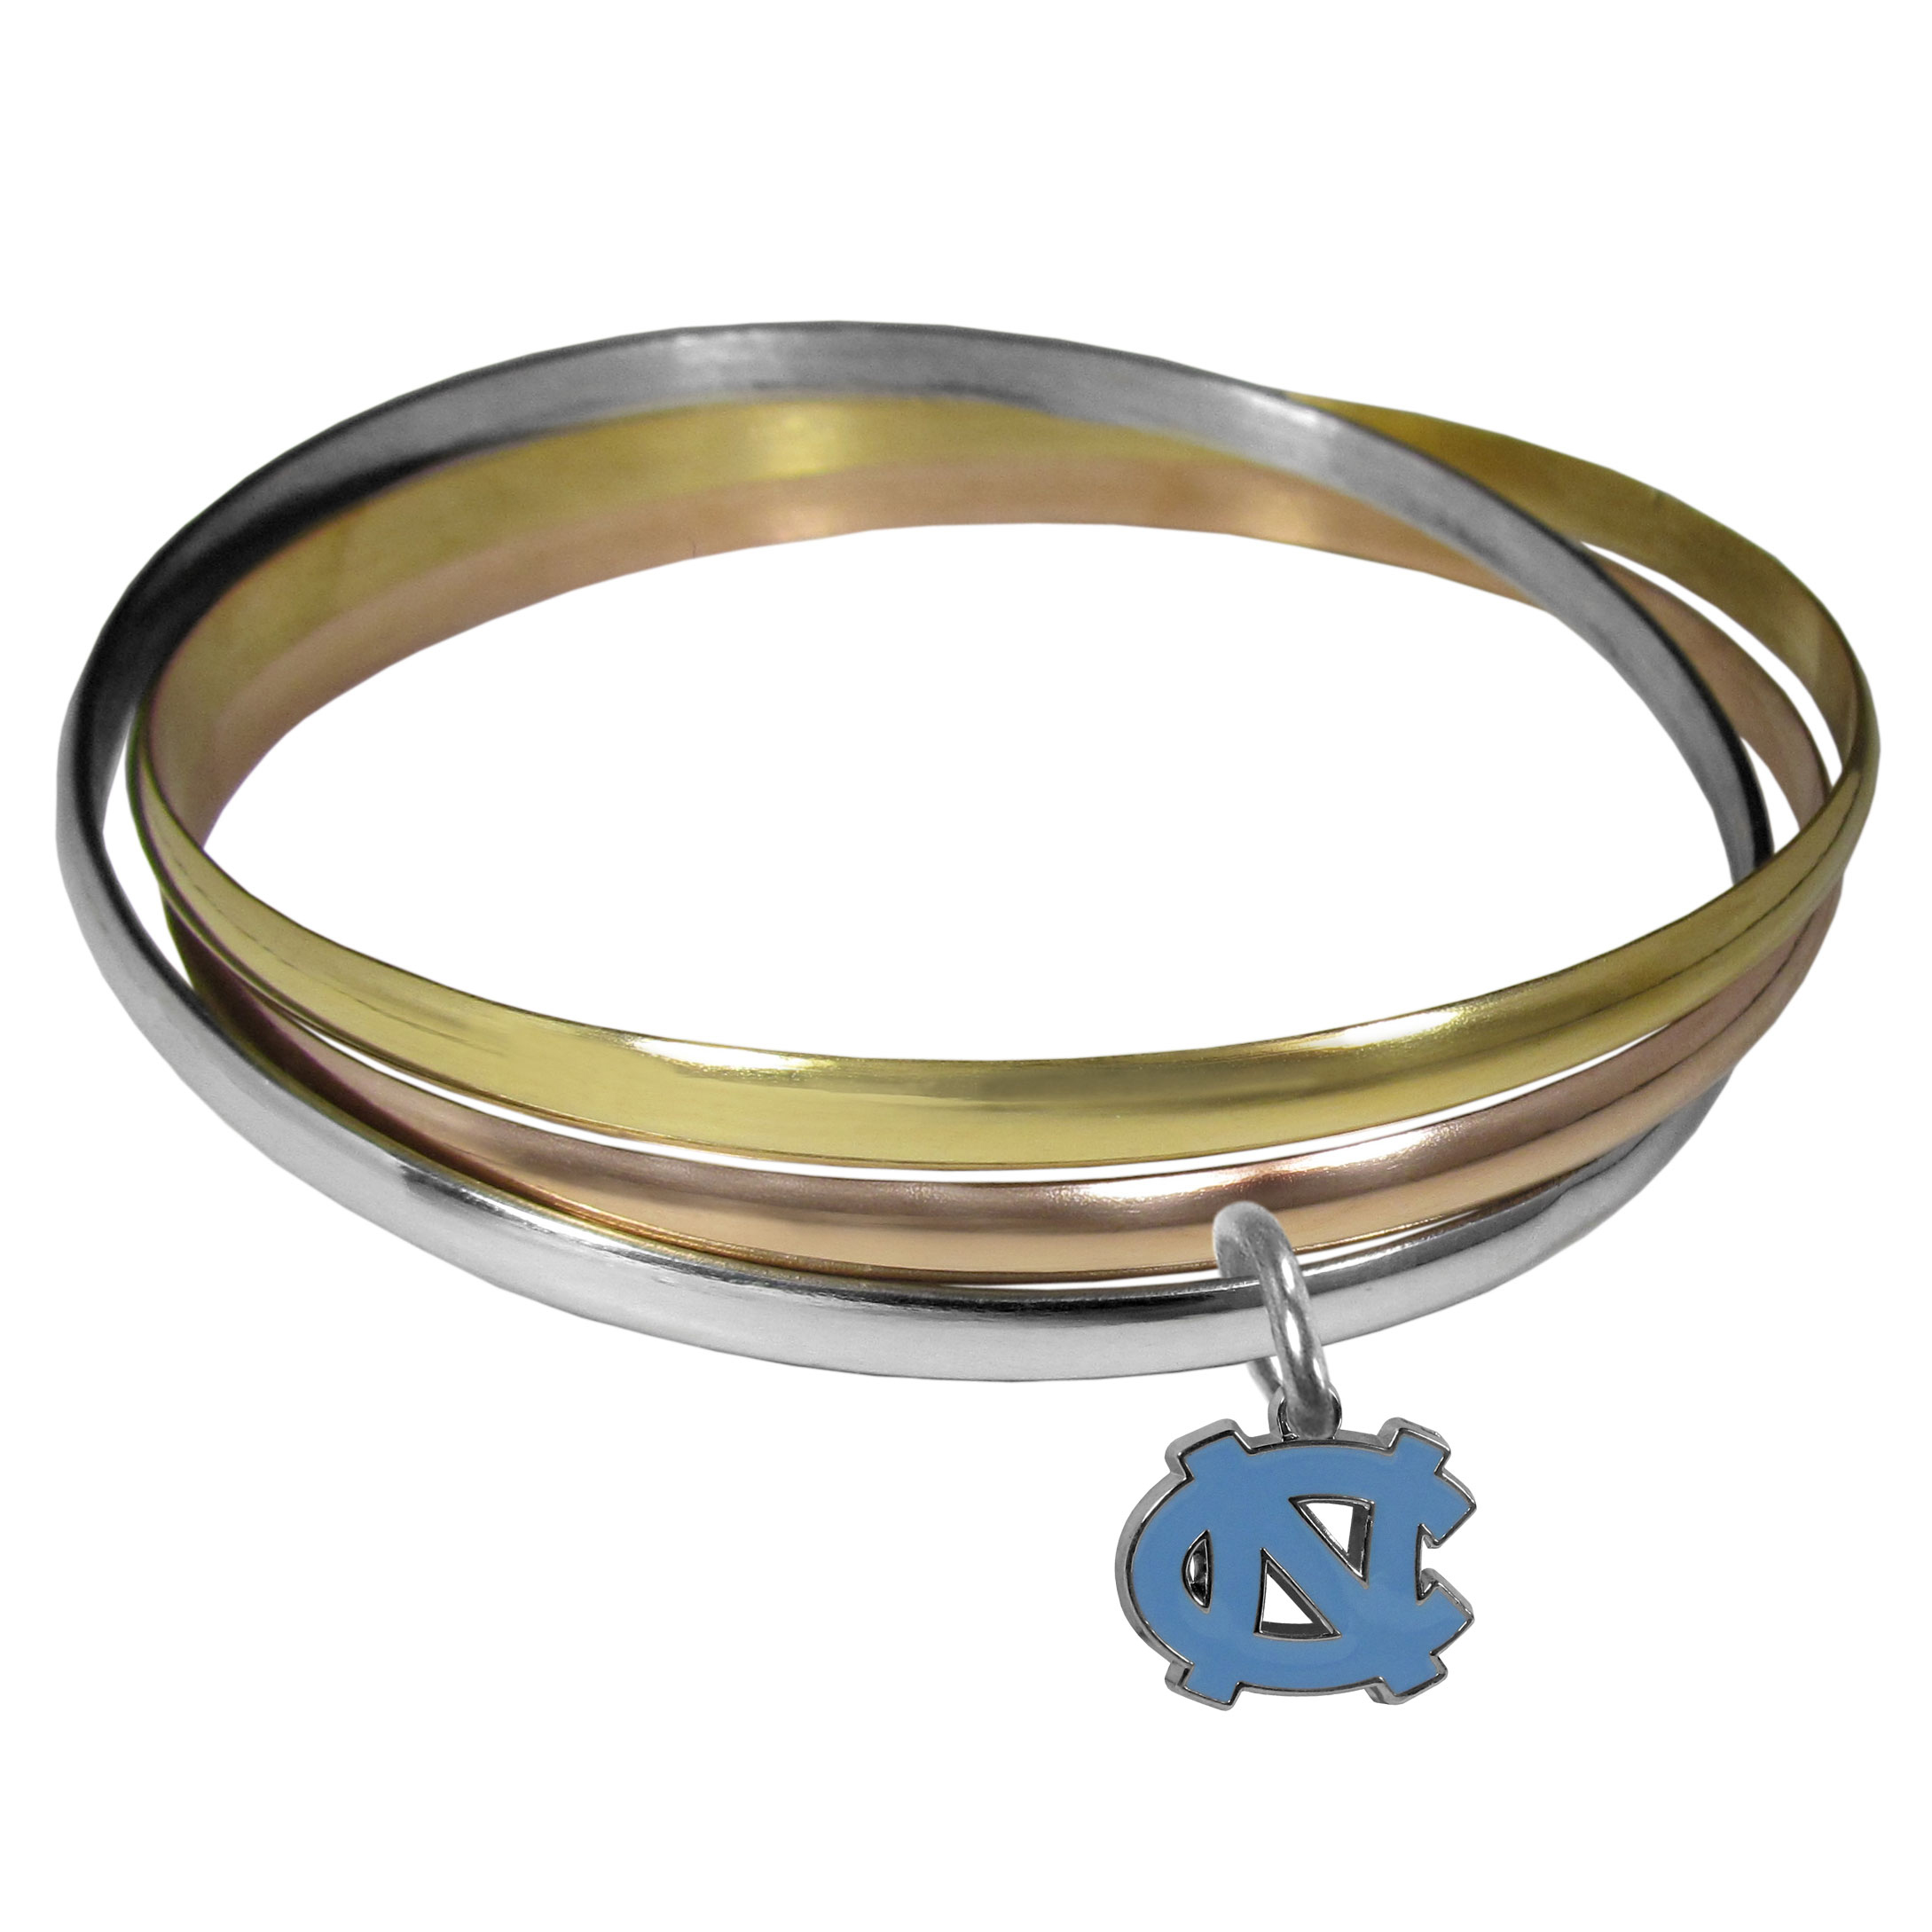 N. Carolina Tar Heels Tri-color Bangle Bracelet - These beautiful bangles come in a interlocking style and feature a fully cast N. Carolina Tar Heels charm with enameled team colors. The bracelet has a silver toned bangle, gold tone bangle and brass toned bangle.